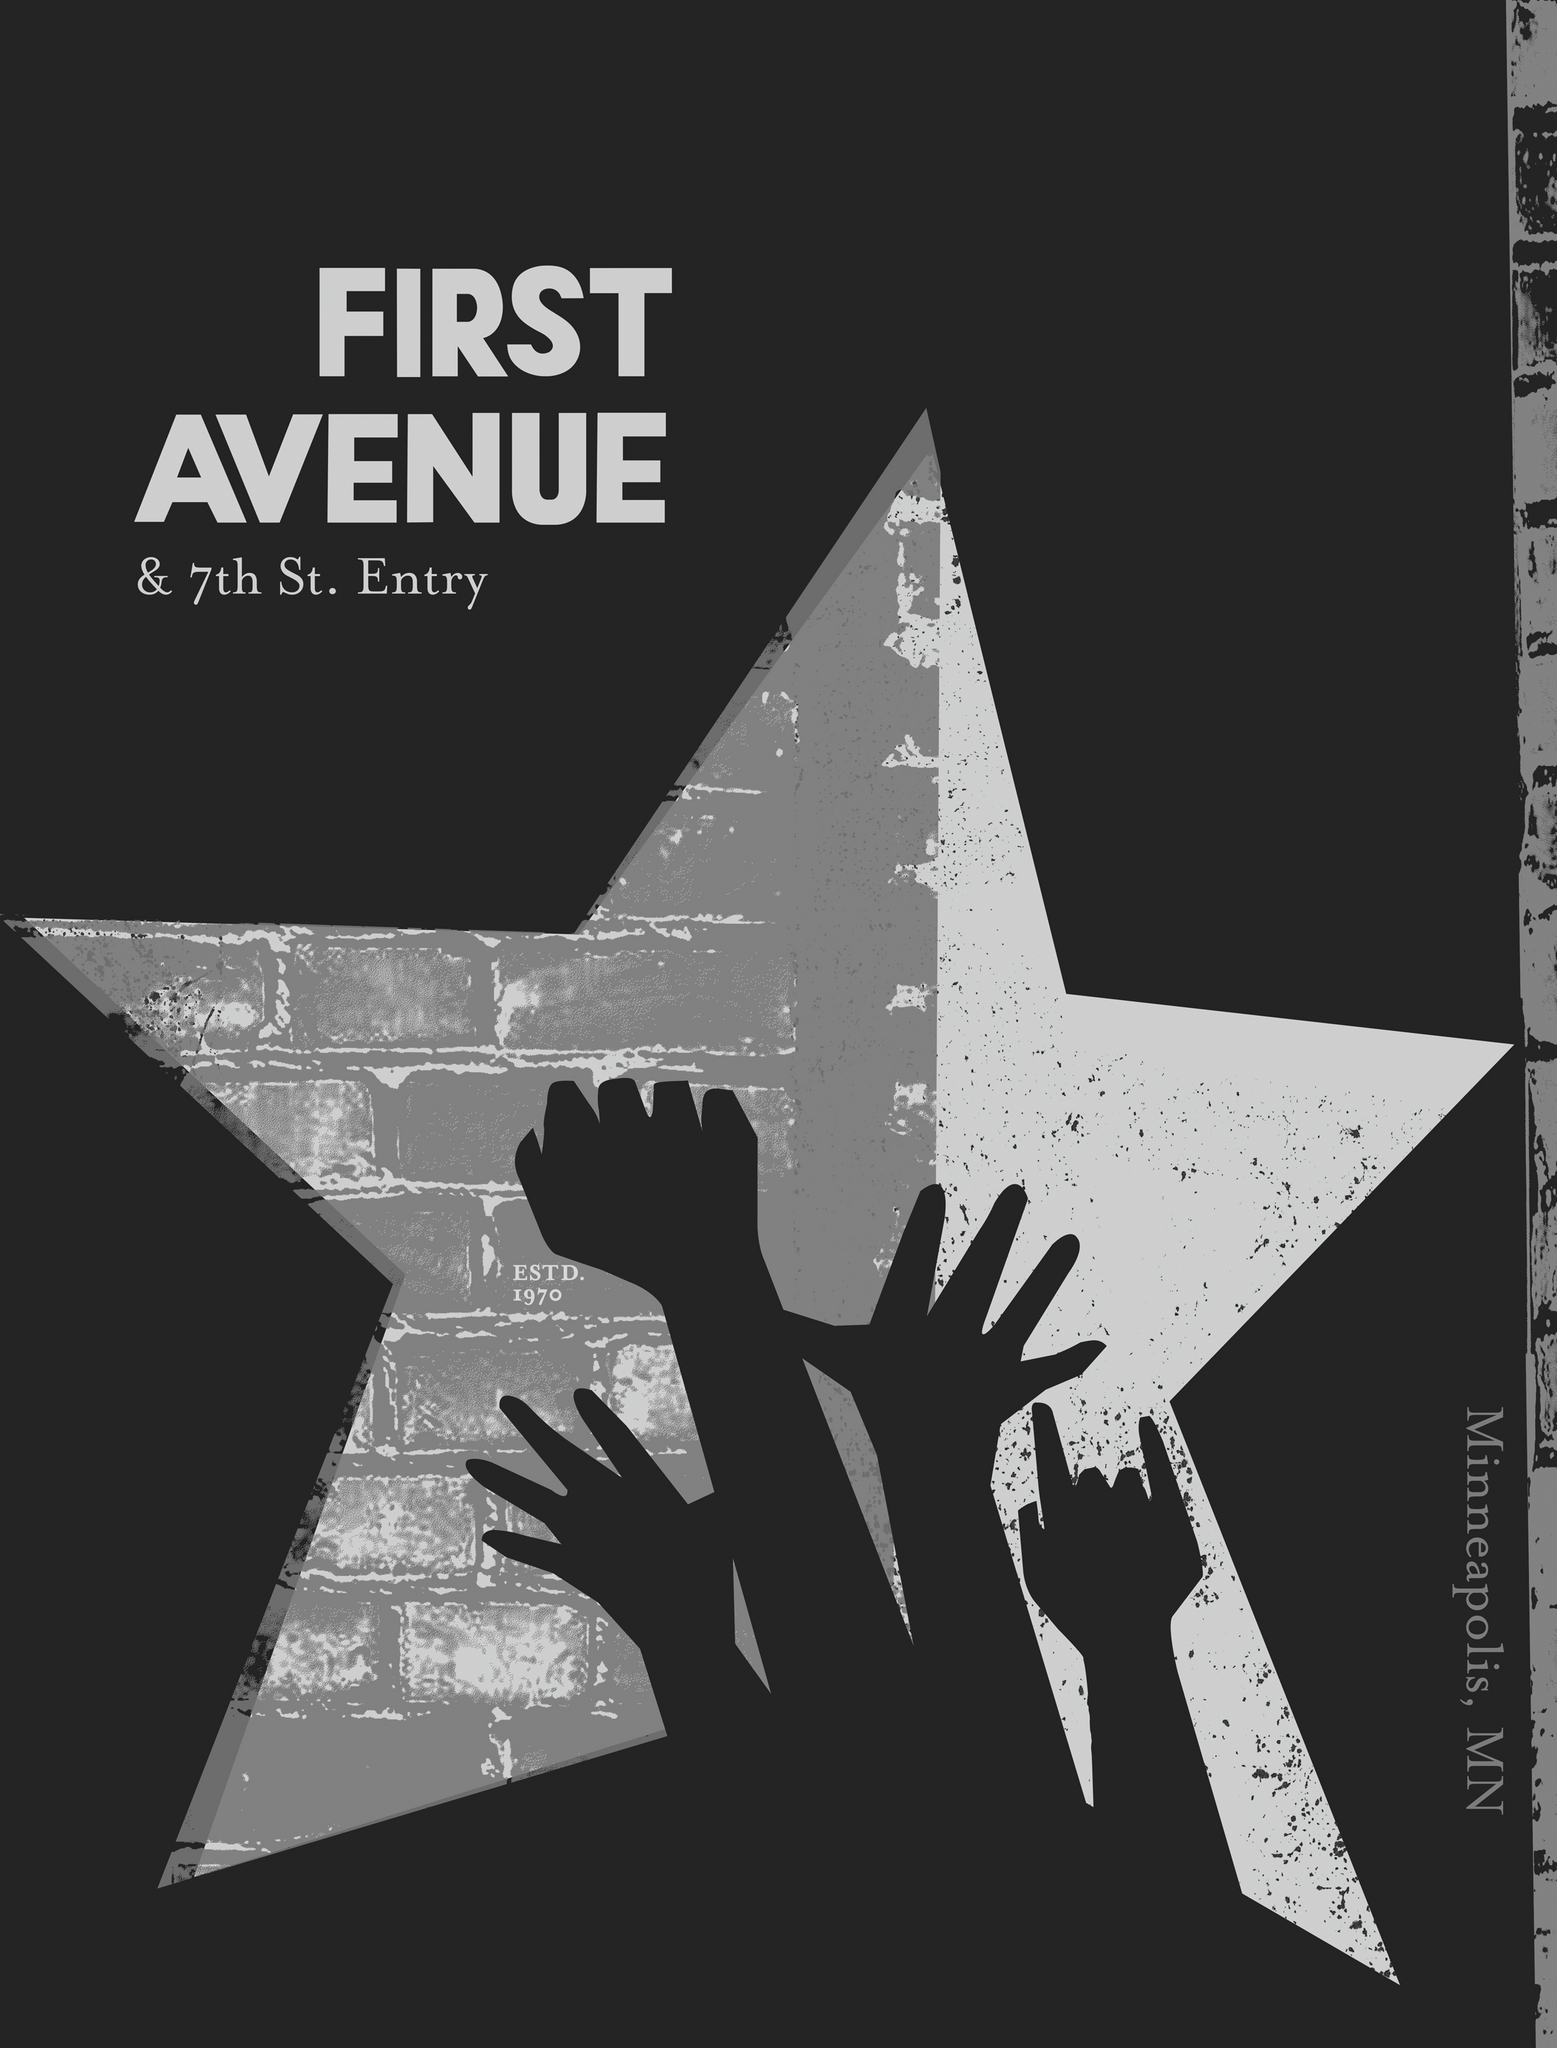 FIRST AVENUE COMMEMORATION, Minneapolis, MN